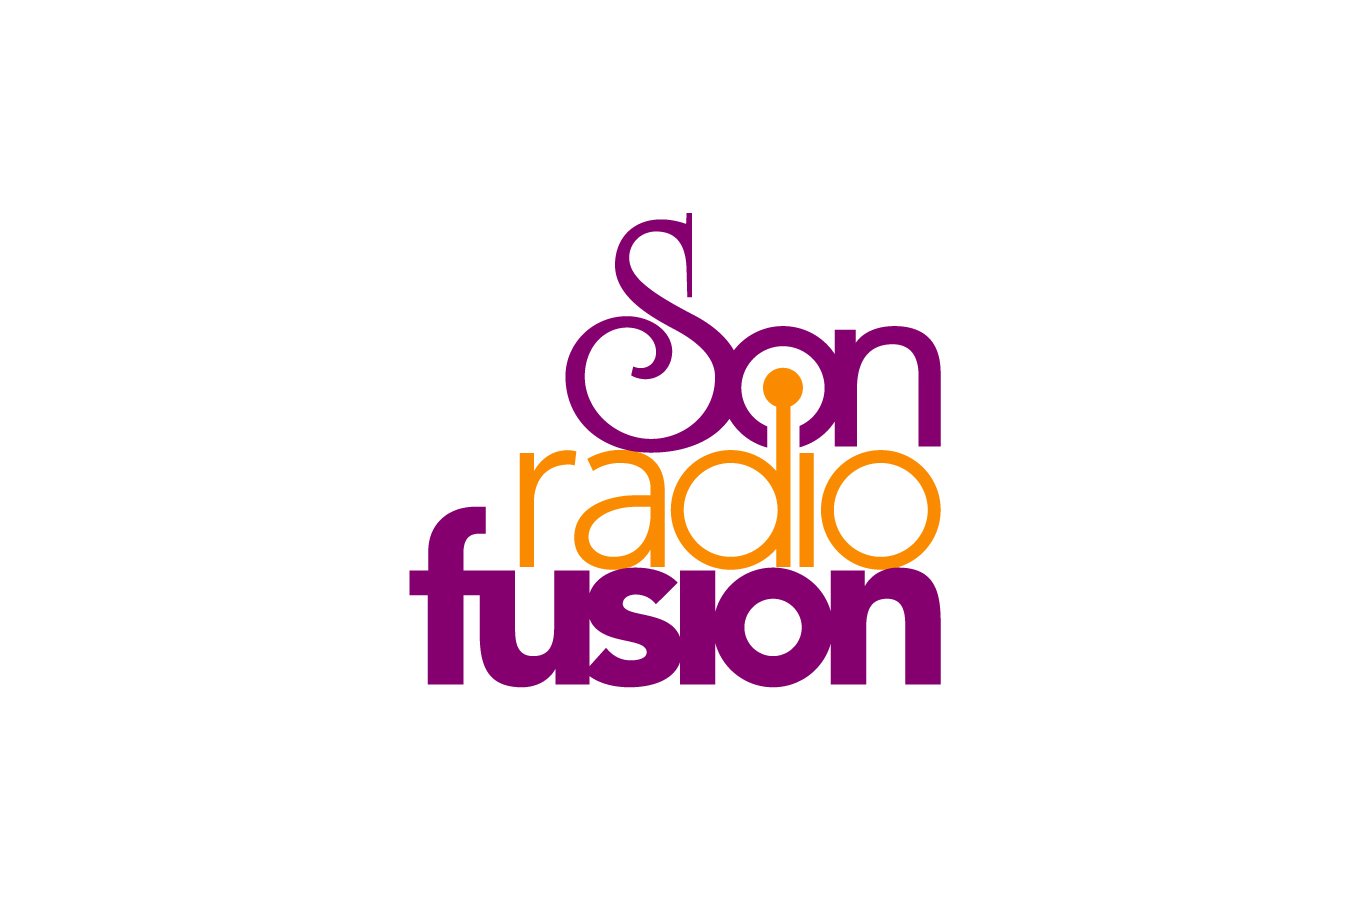 SON RADIOFUSIÓN logotipo